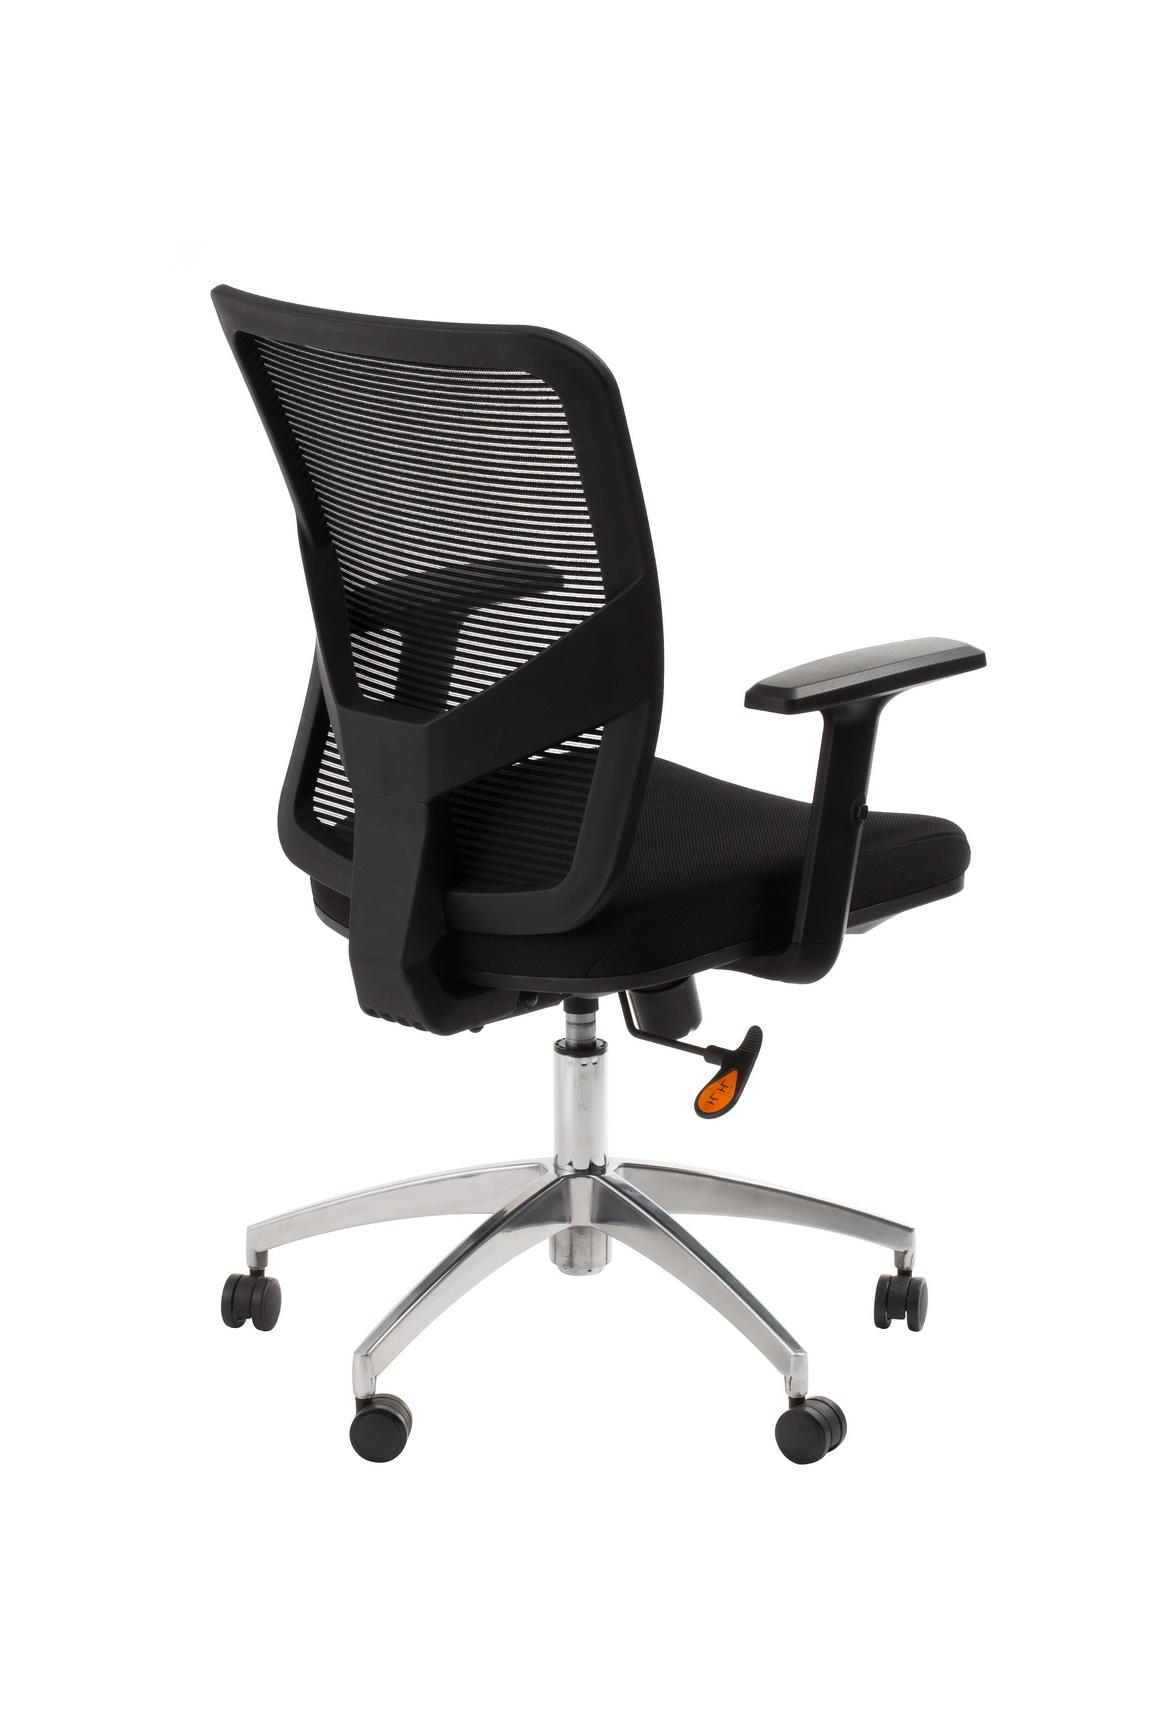 ergonomic chair brisbane convertible single sleeper bed office furniture store furnitures